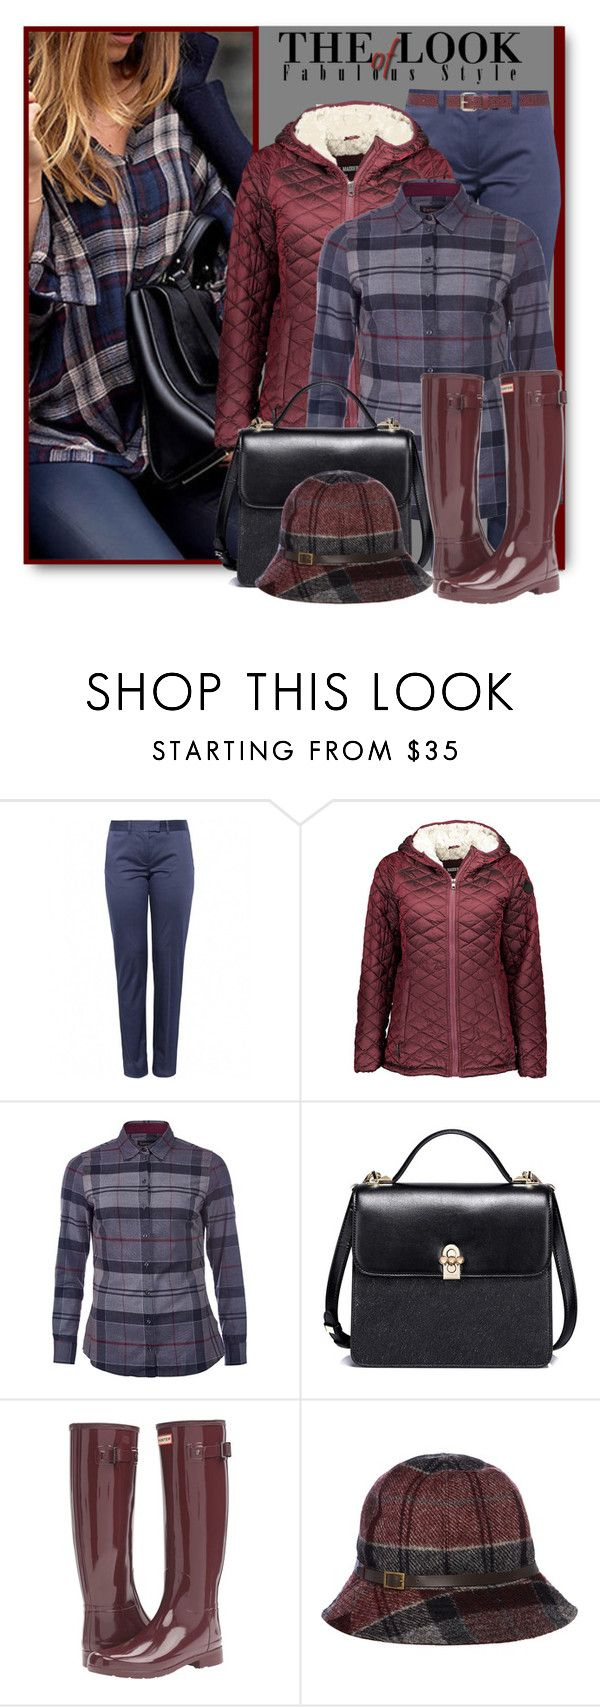 """Perfect Puffer Jackets"" by brendariley-1 ❤ liked on Polyvore featuring Farhi by Nicole Farhi, Steve Madden, Barbour, Hunter, M&Co and puffers"